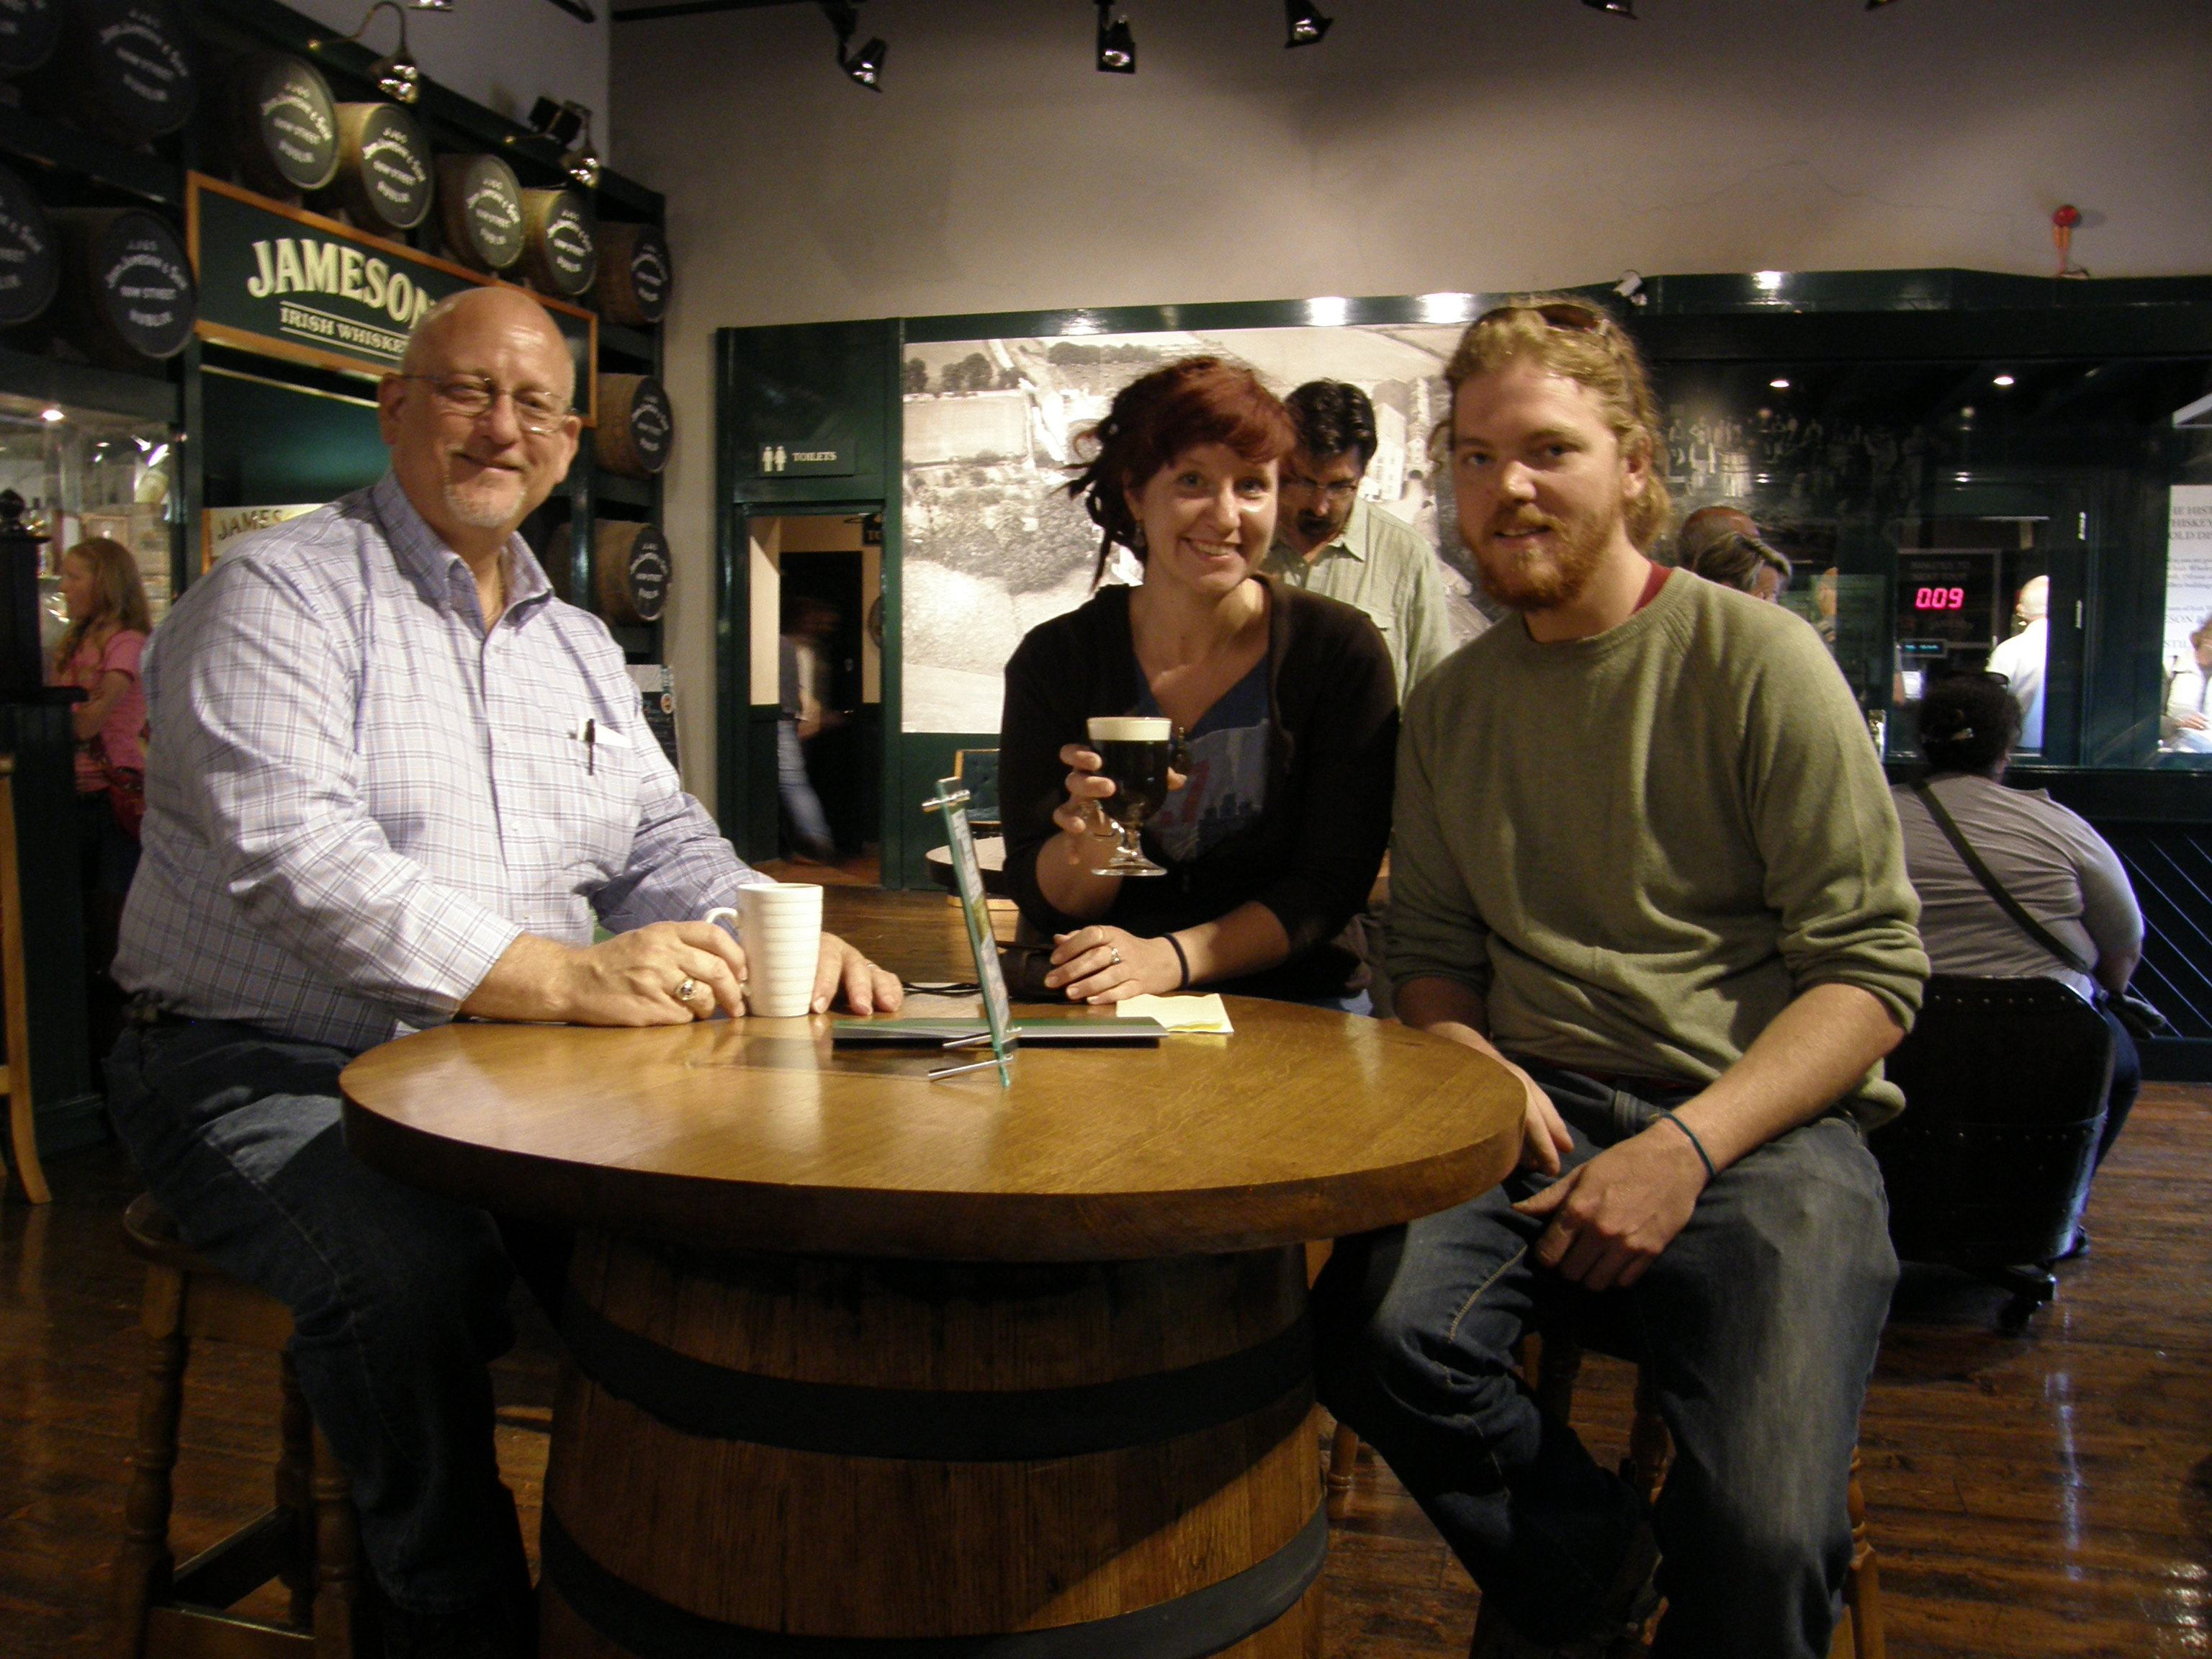 The Three of Us at the Jameson's Distillery